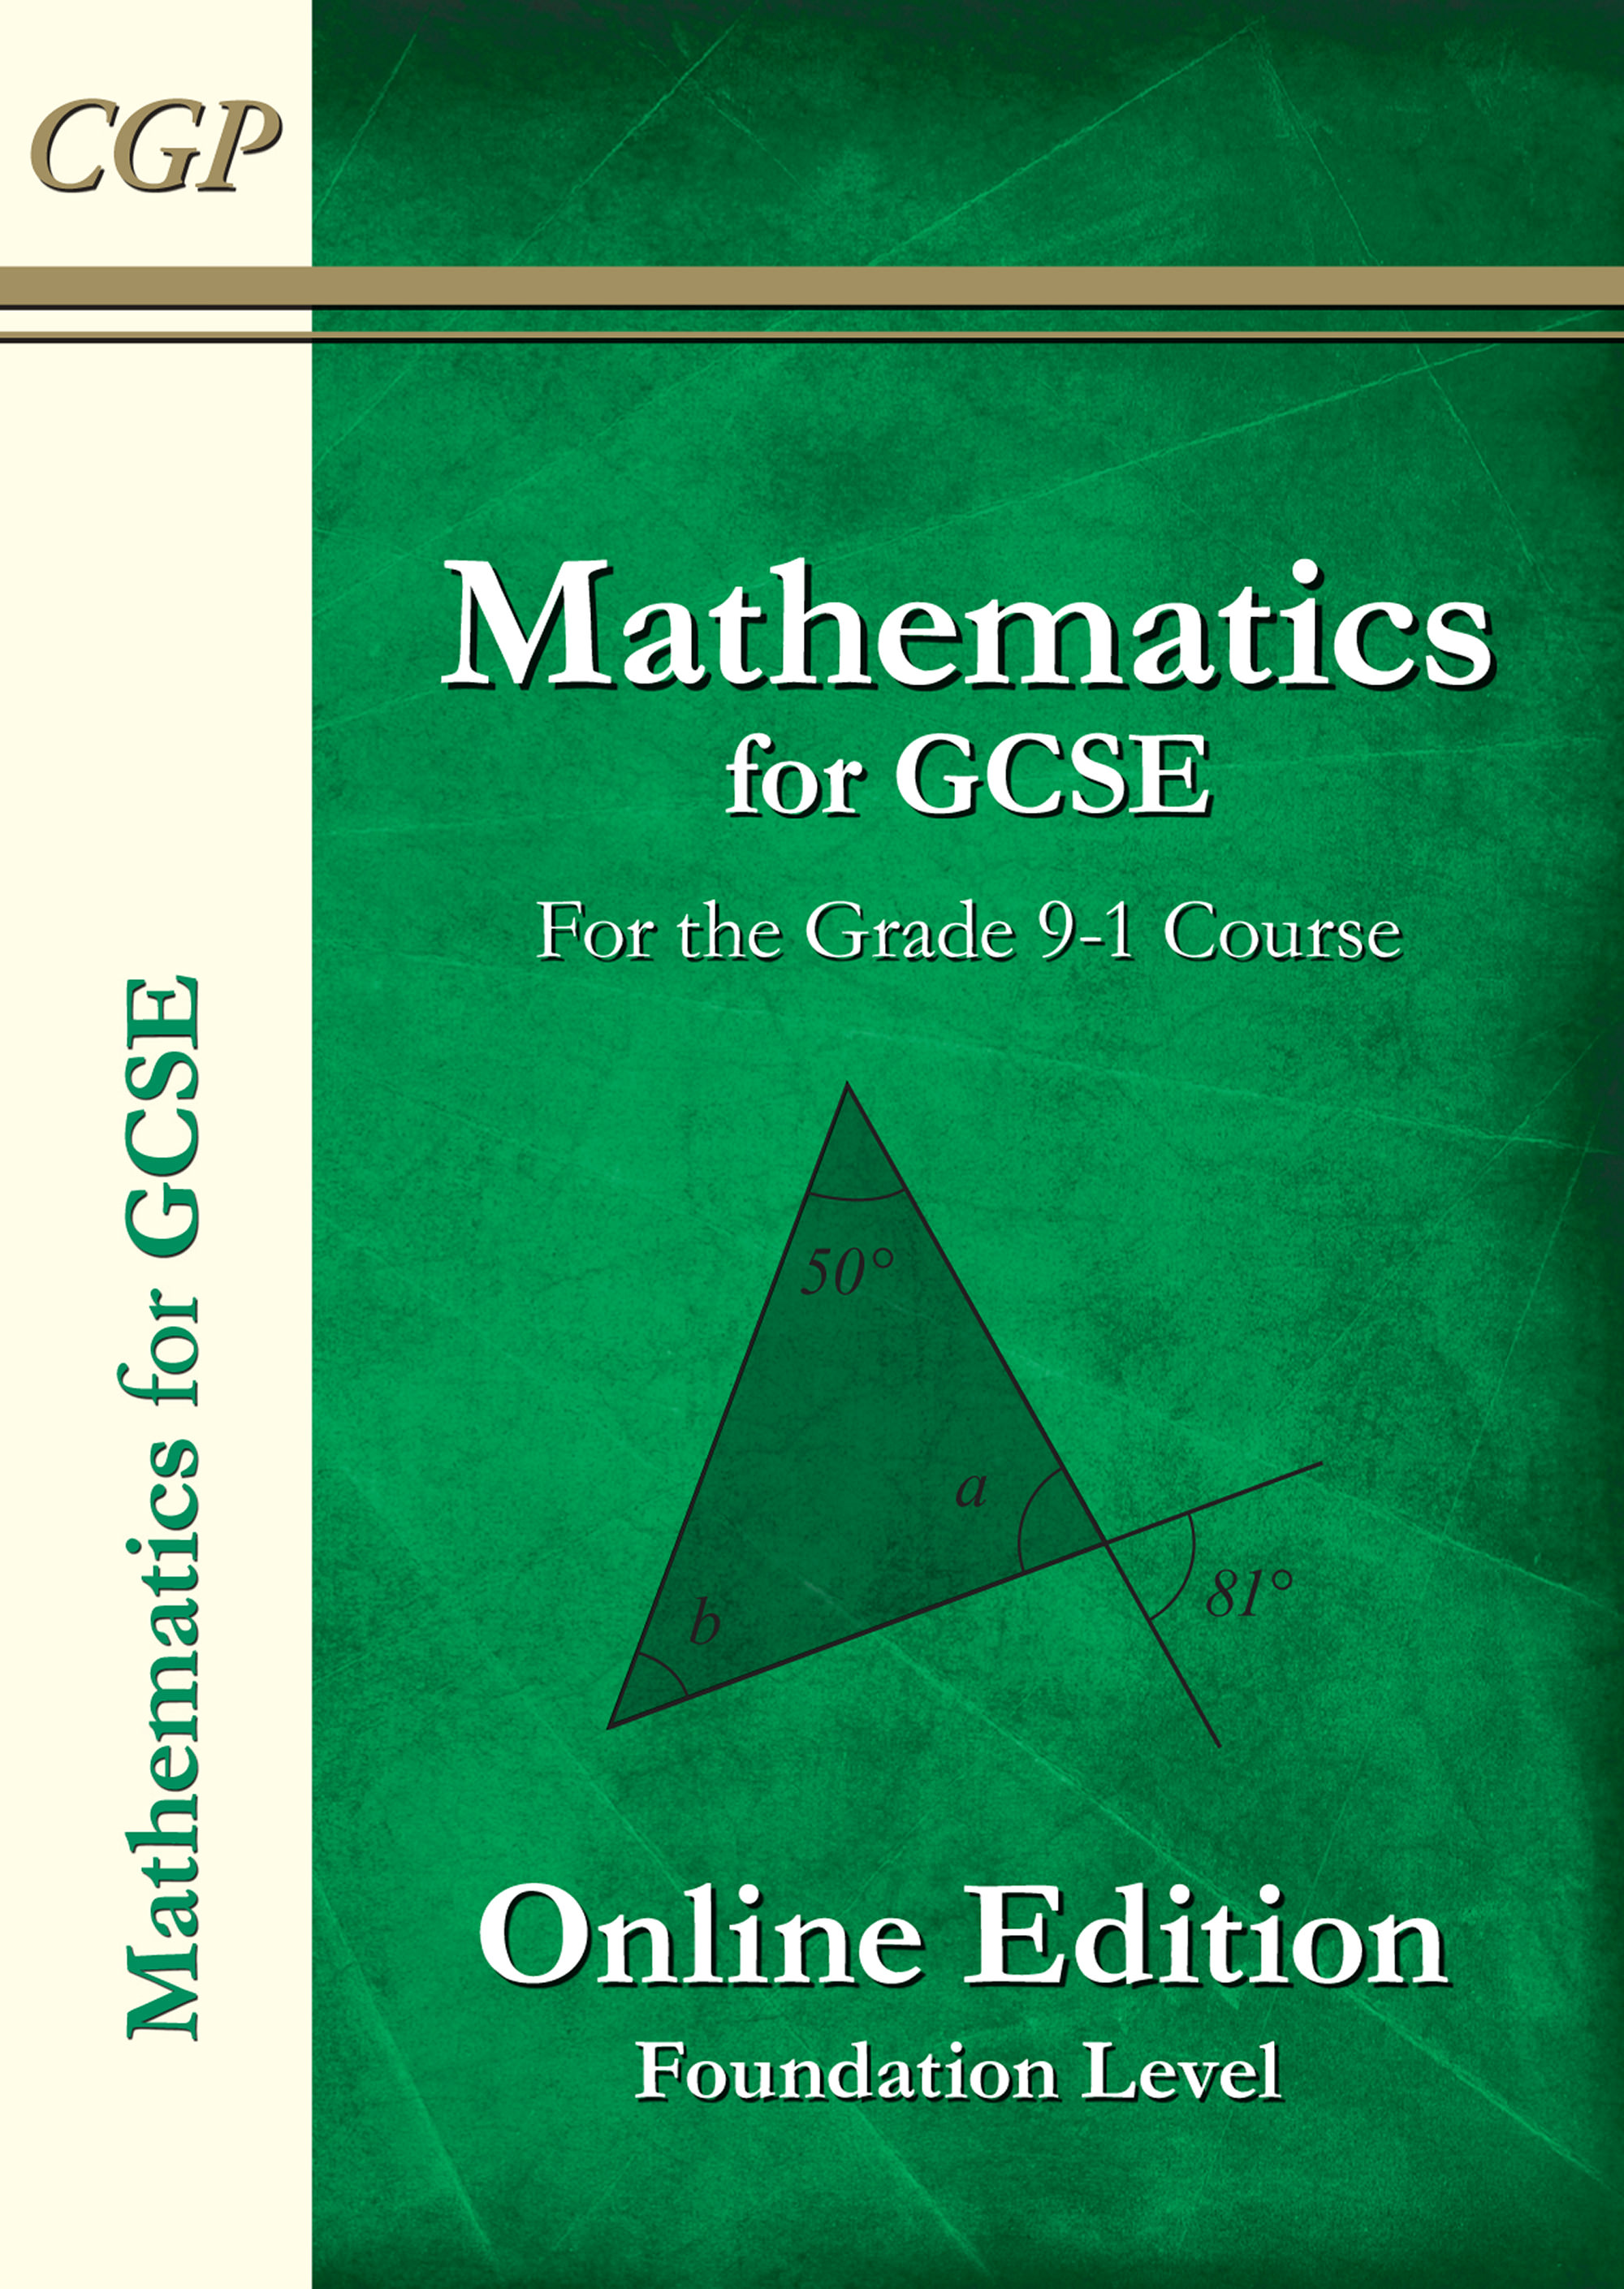 MFN42D - Maths for GCSE Textbook: Online Edition with answers - Foundation (for the Grade 9-1 Course